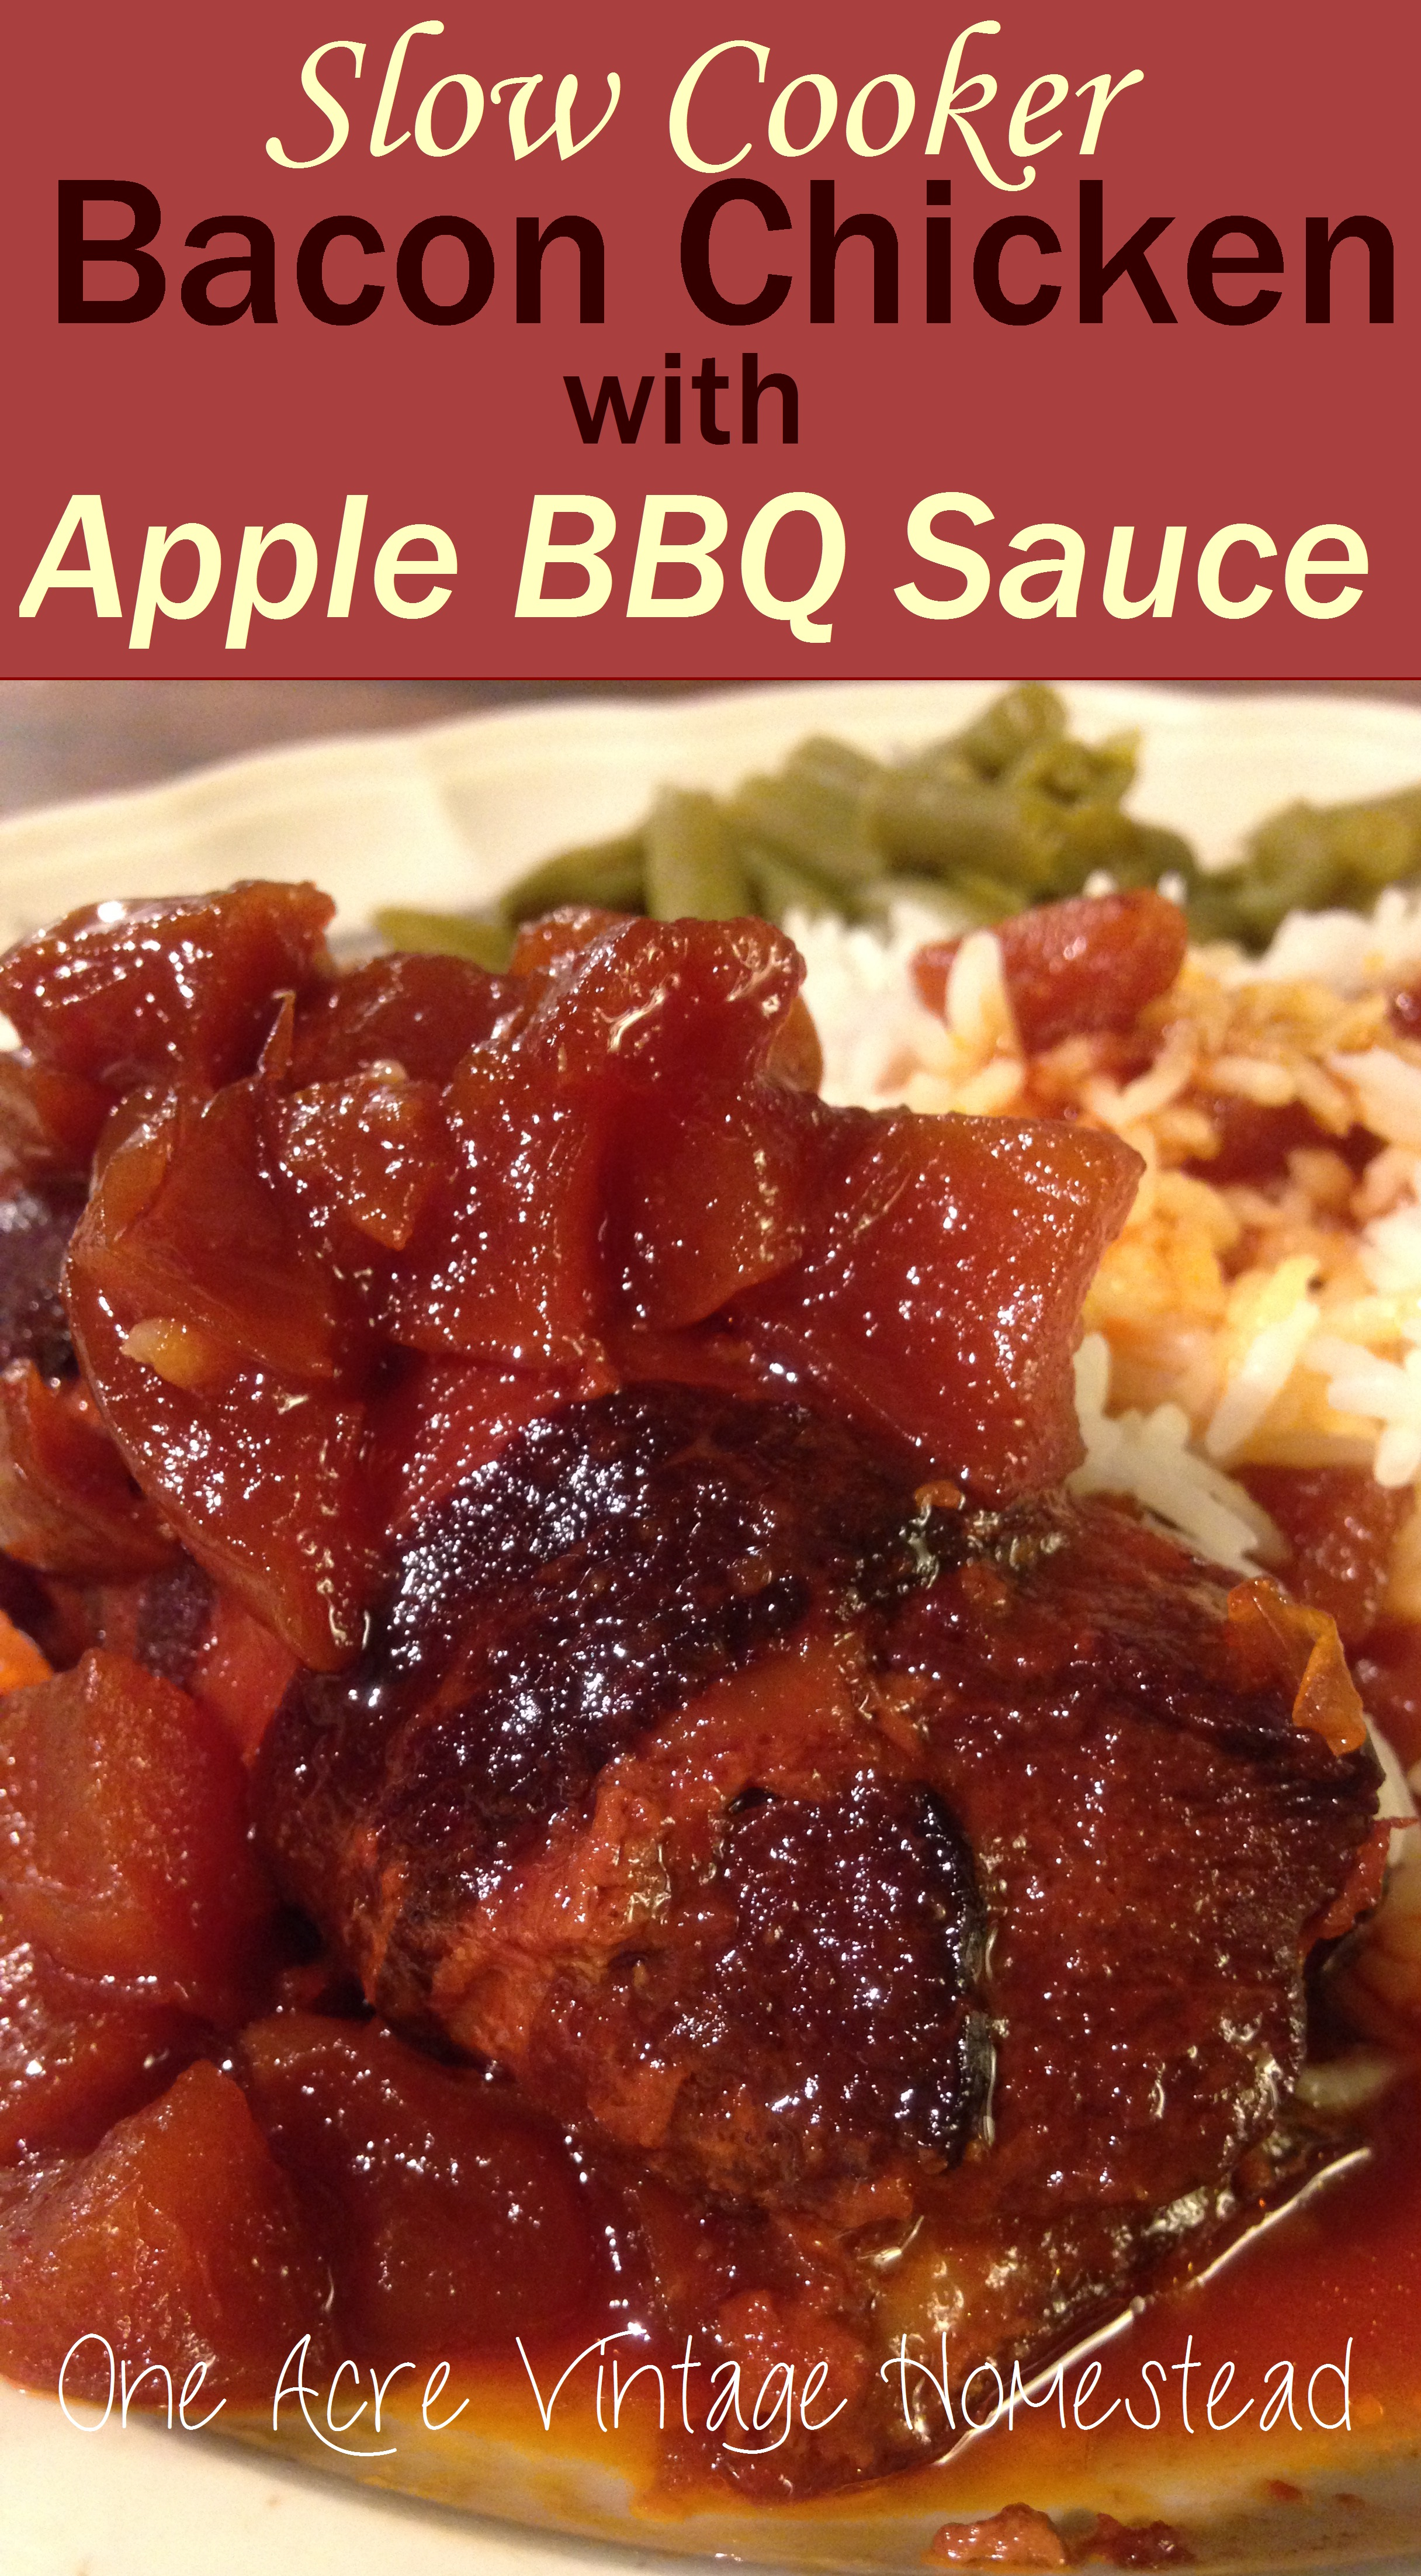 Slow Cooker Bacon Chicken with Apple Barbeque Sauce